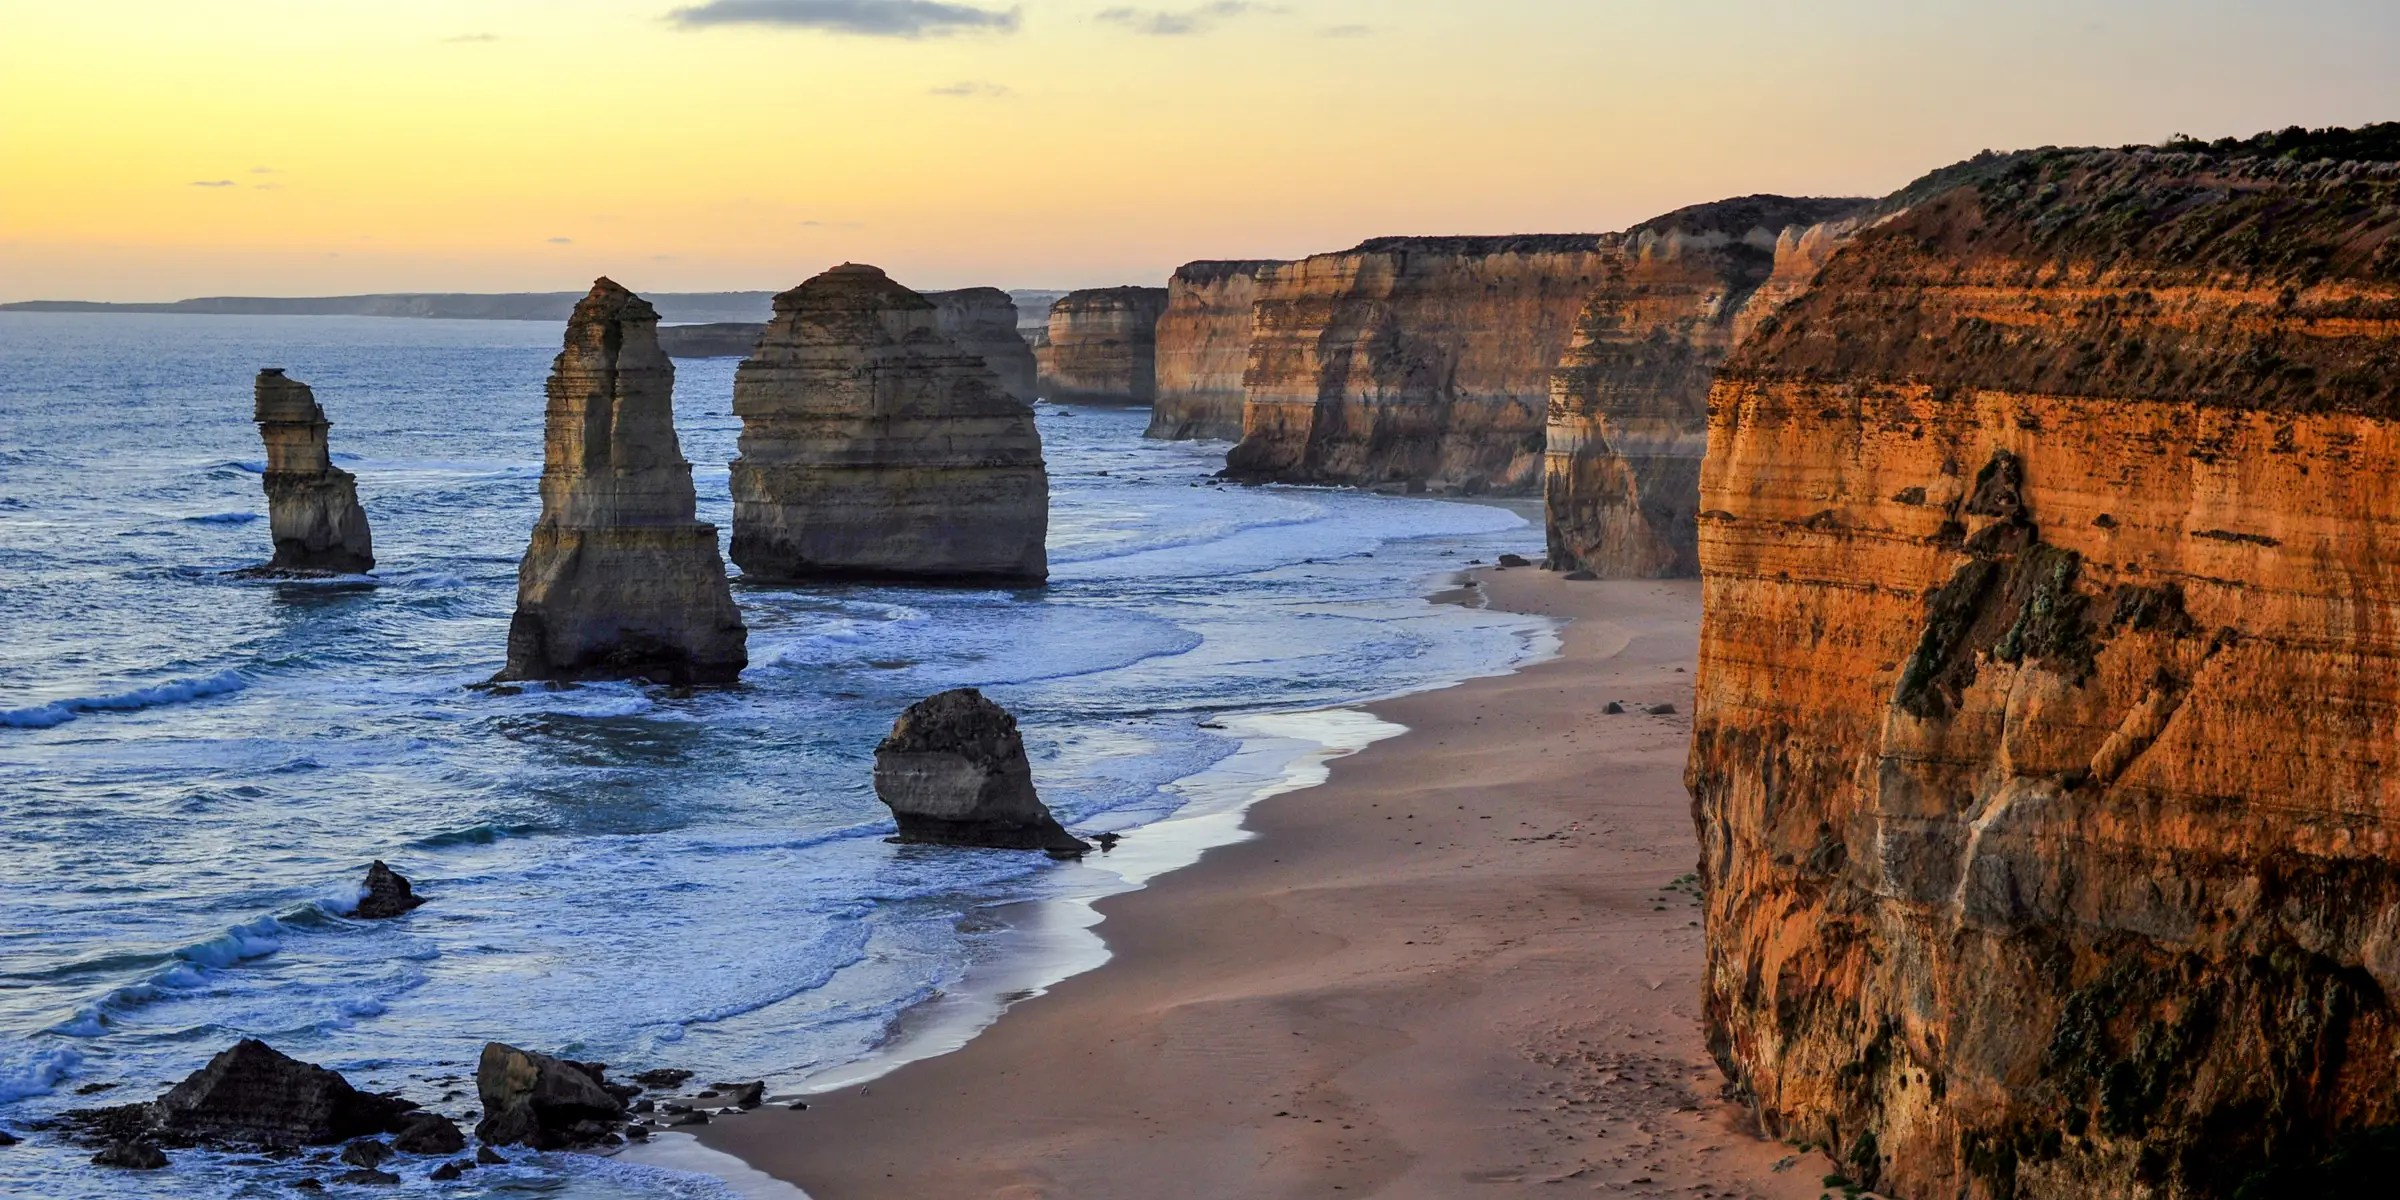 Along the beautiful Great Ocean Road in Australia, you can find the famous limestone stacks called the Twelve Apostles, whale lookouts, rain forests, and beautiful national parks.